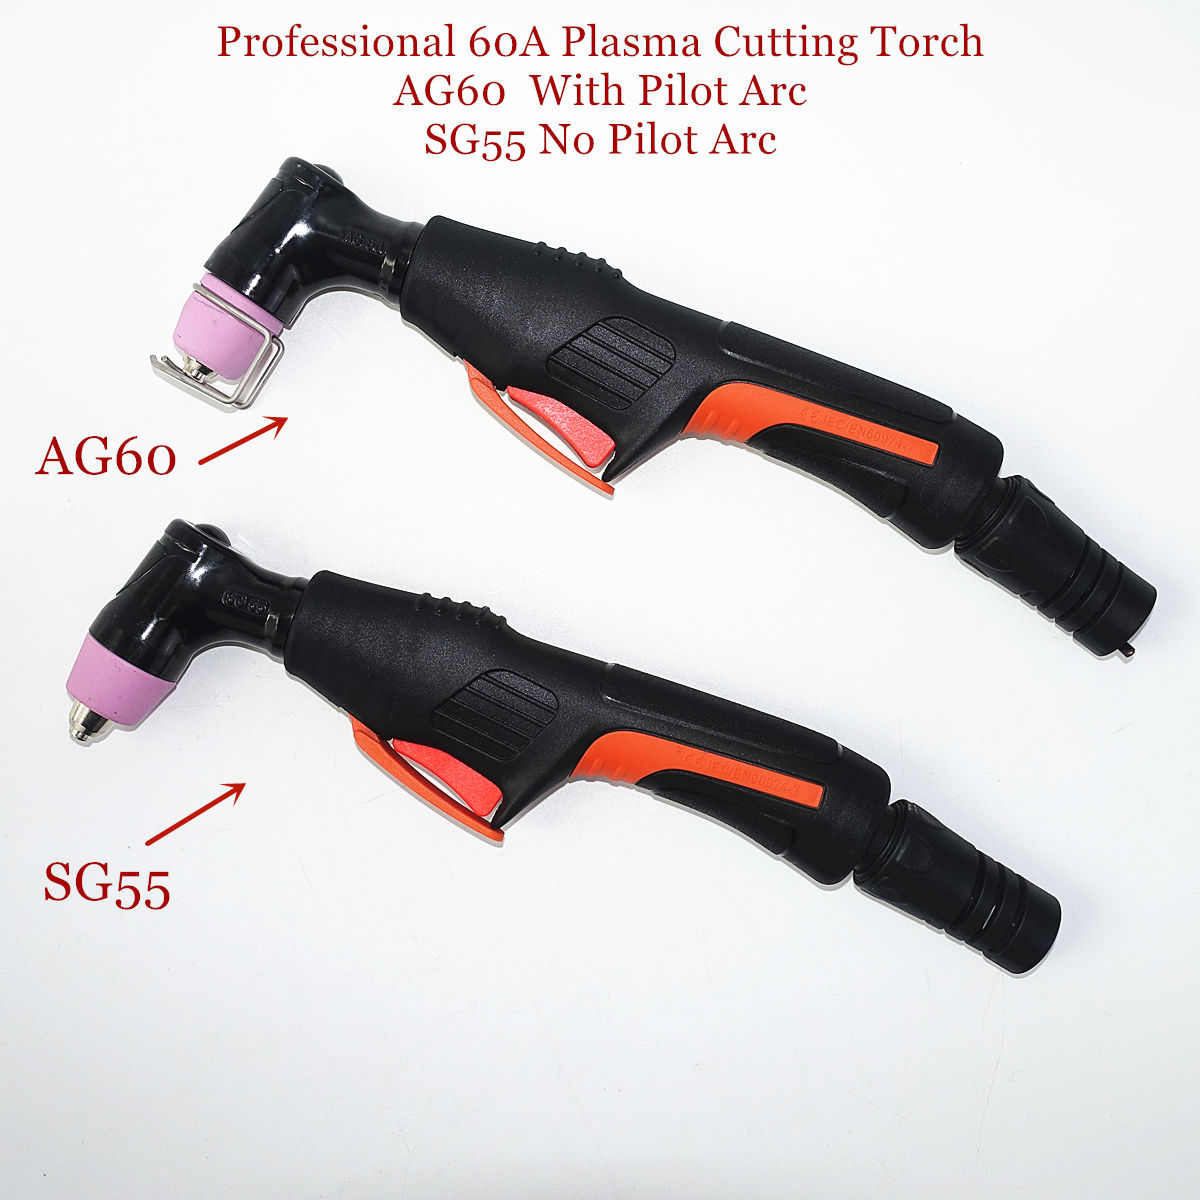 Professional AG60 Torch SG55 Torch Plasma Cutter Gun With/without Pilot Arc Plasma Torch 60A Plasma Cutting Torch